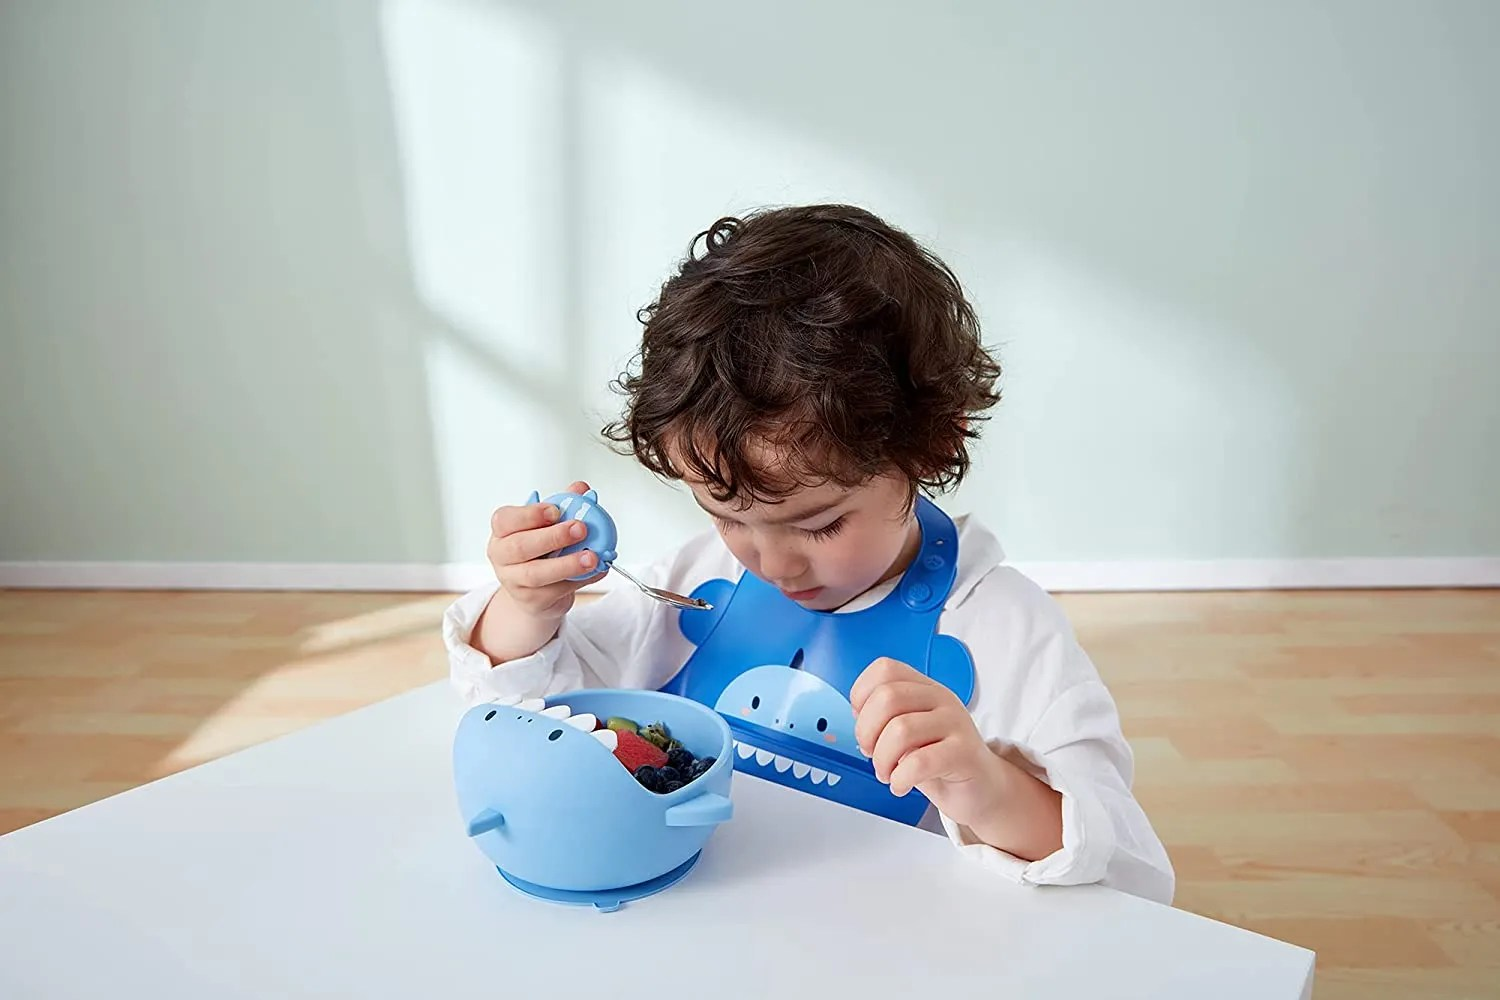 Silicone Weaning Baby Feeding Set model picture (blue)